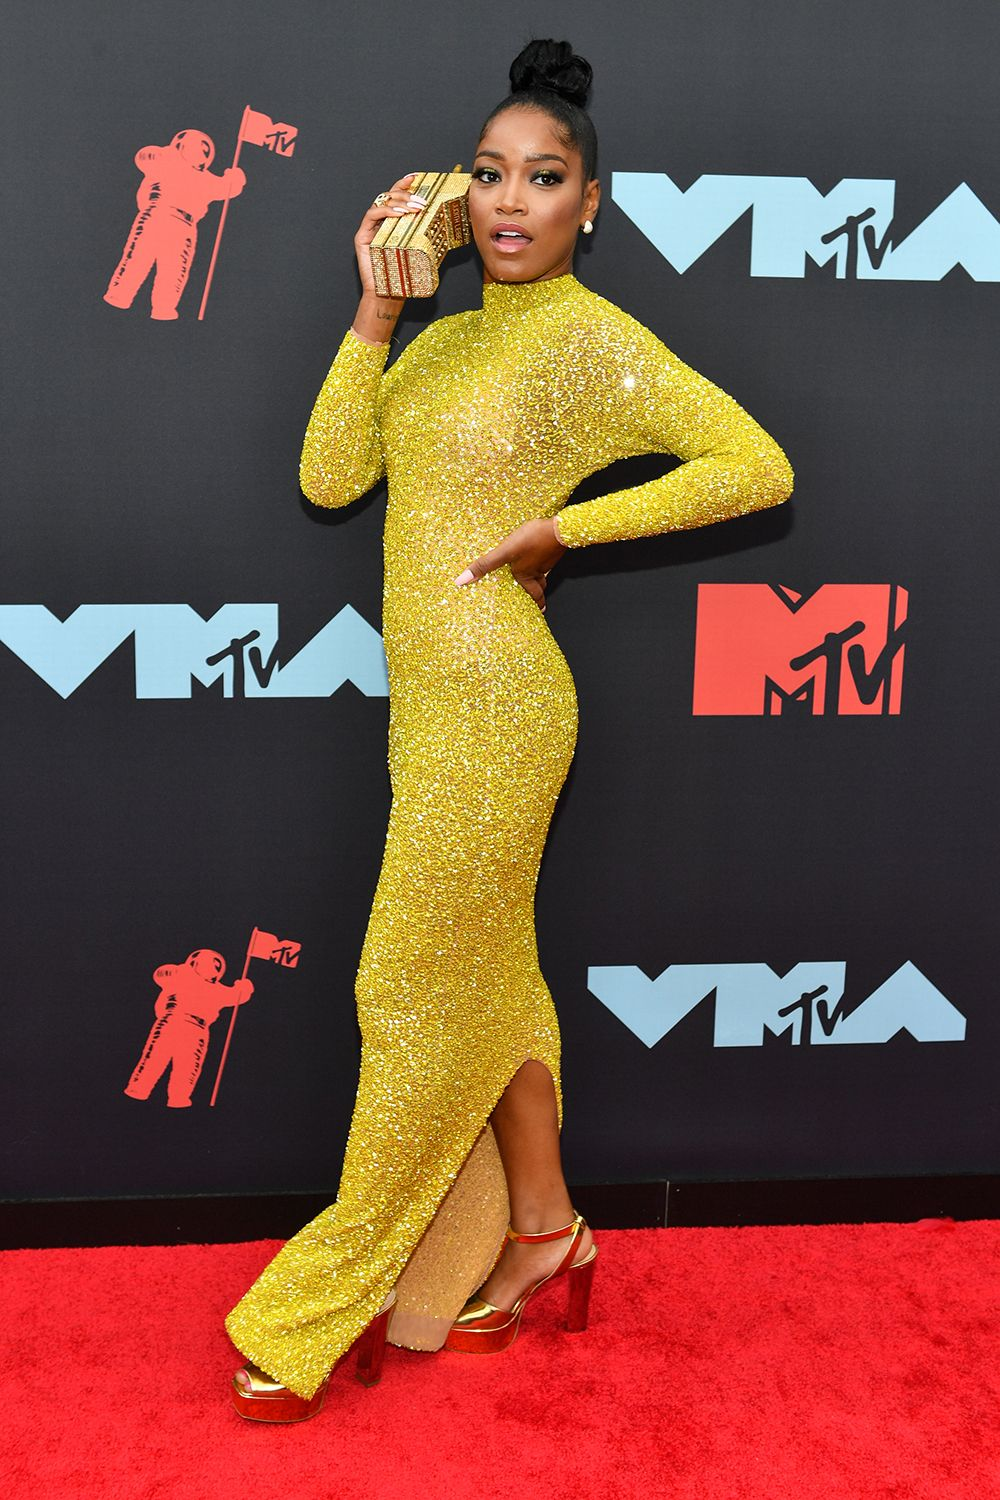 Mtv Vma Arrivals 2019 Photos Of Vmas Red Carpet Nice Dresses Gorgeous Gowns Red Carpet Fashion